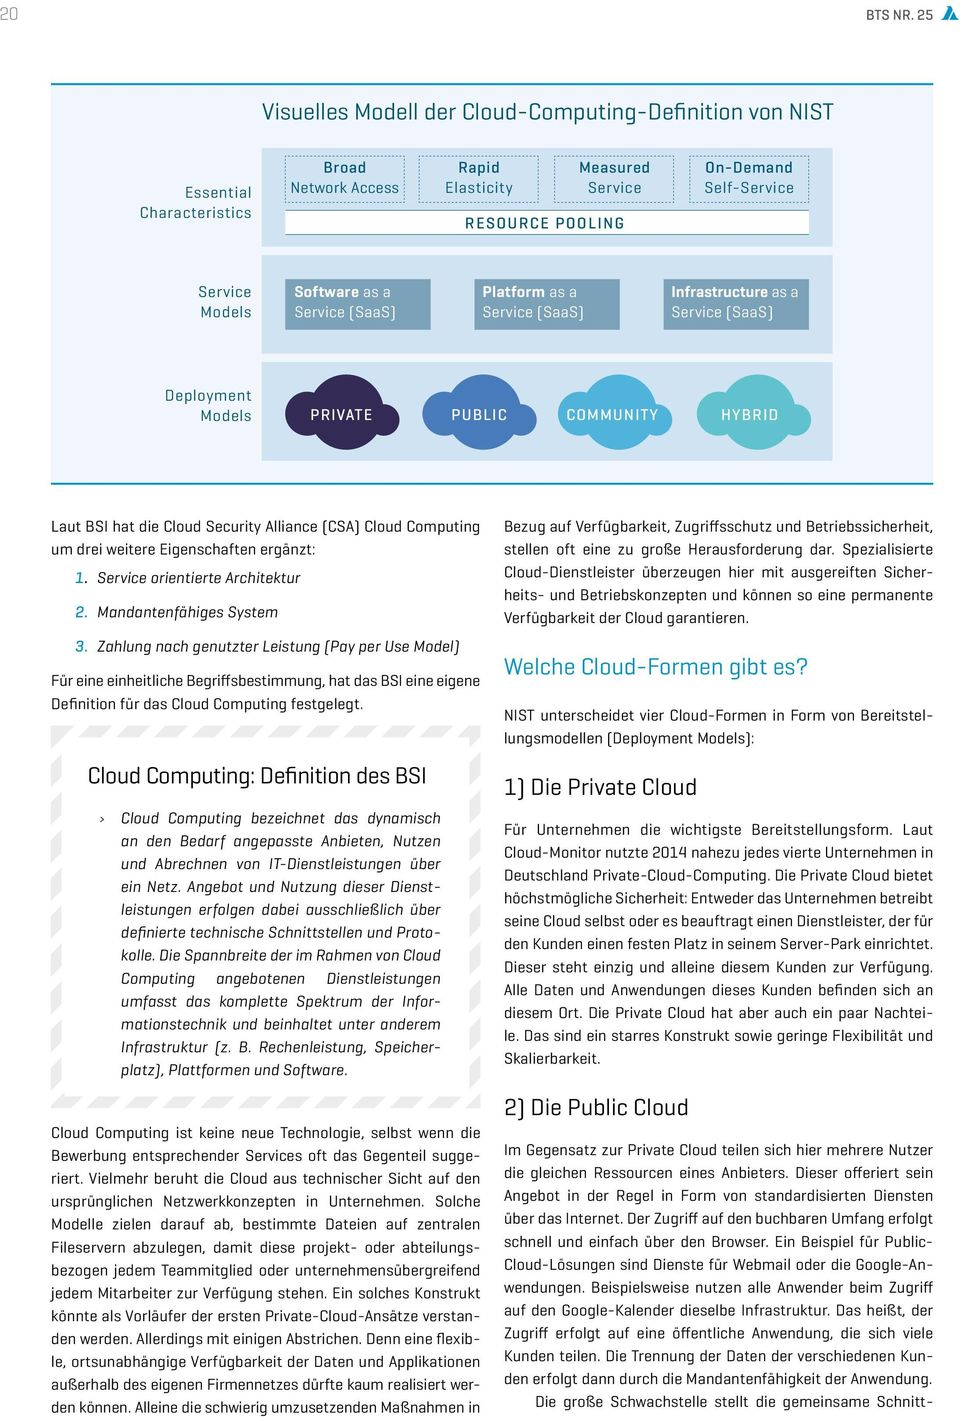 Software as a Service (SaaS) Platform as a Service (SaaS) Infrastructure as a Service (SaaS) Deployment Models PRIVATE PUBLIC COMMUNITY HYBRID Laut BSI hat die Cloud Security Alliance (CSA) Cloud